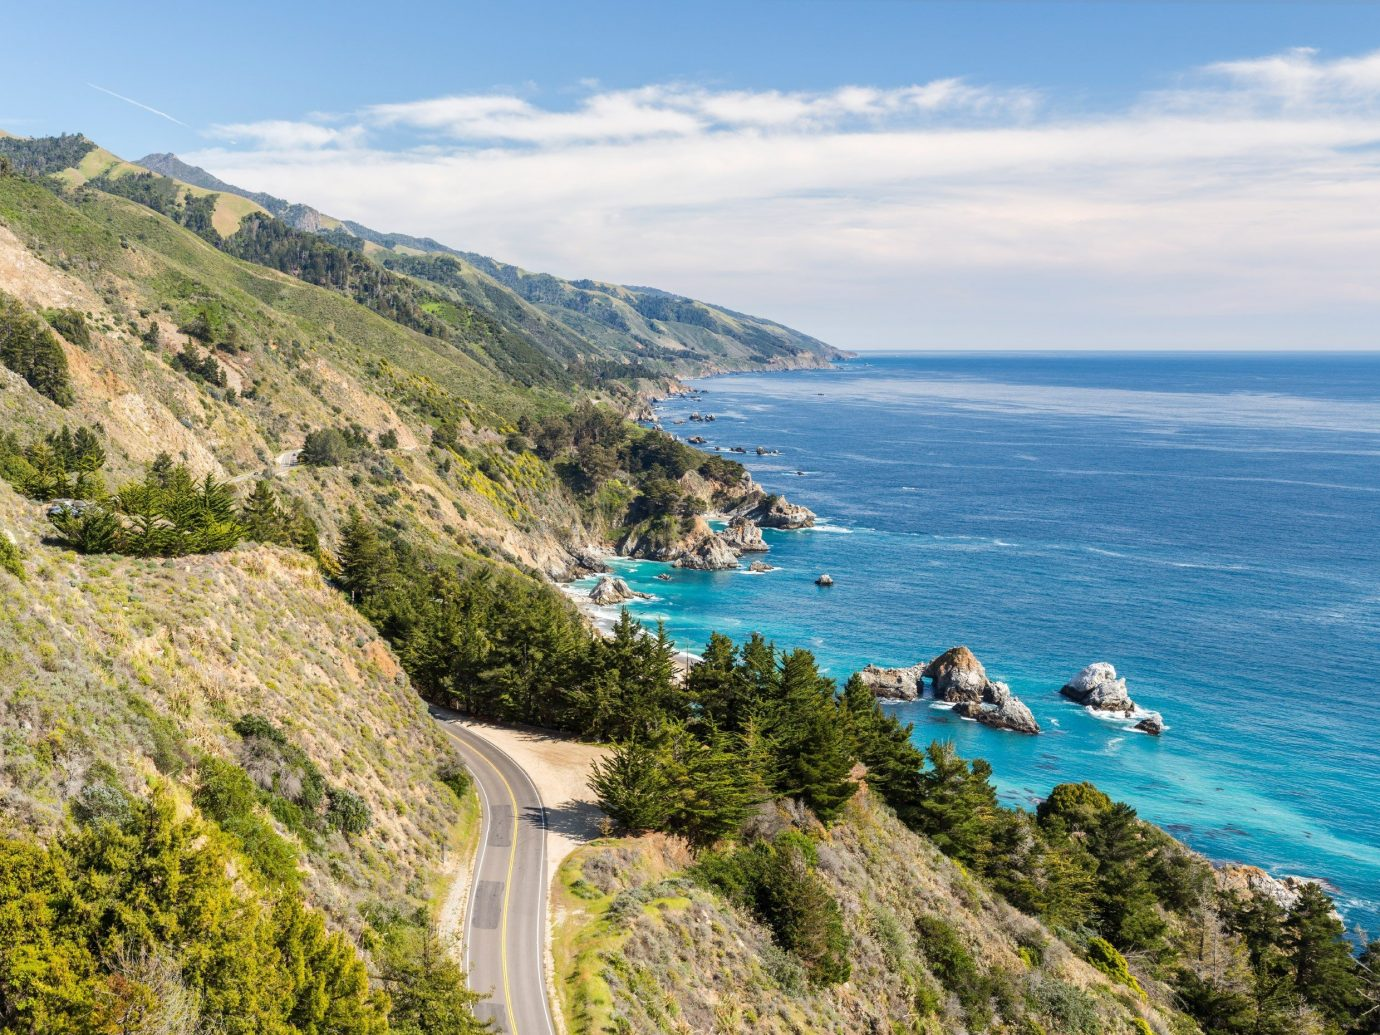 Road Trips Trip Ideas sky outdoor mountain Nature water Coast landform body of water Sea vacation hill cliff Ocean tourism hillside overlooking cape terrain bay rocky cove Adventure fjord